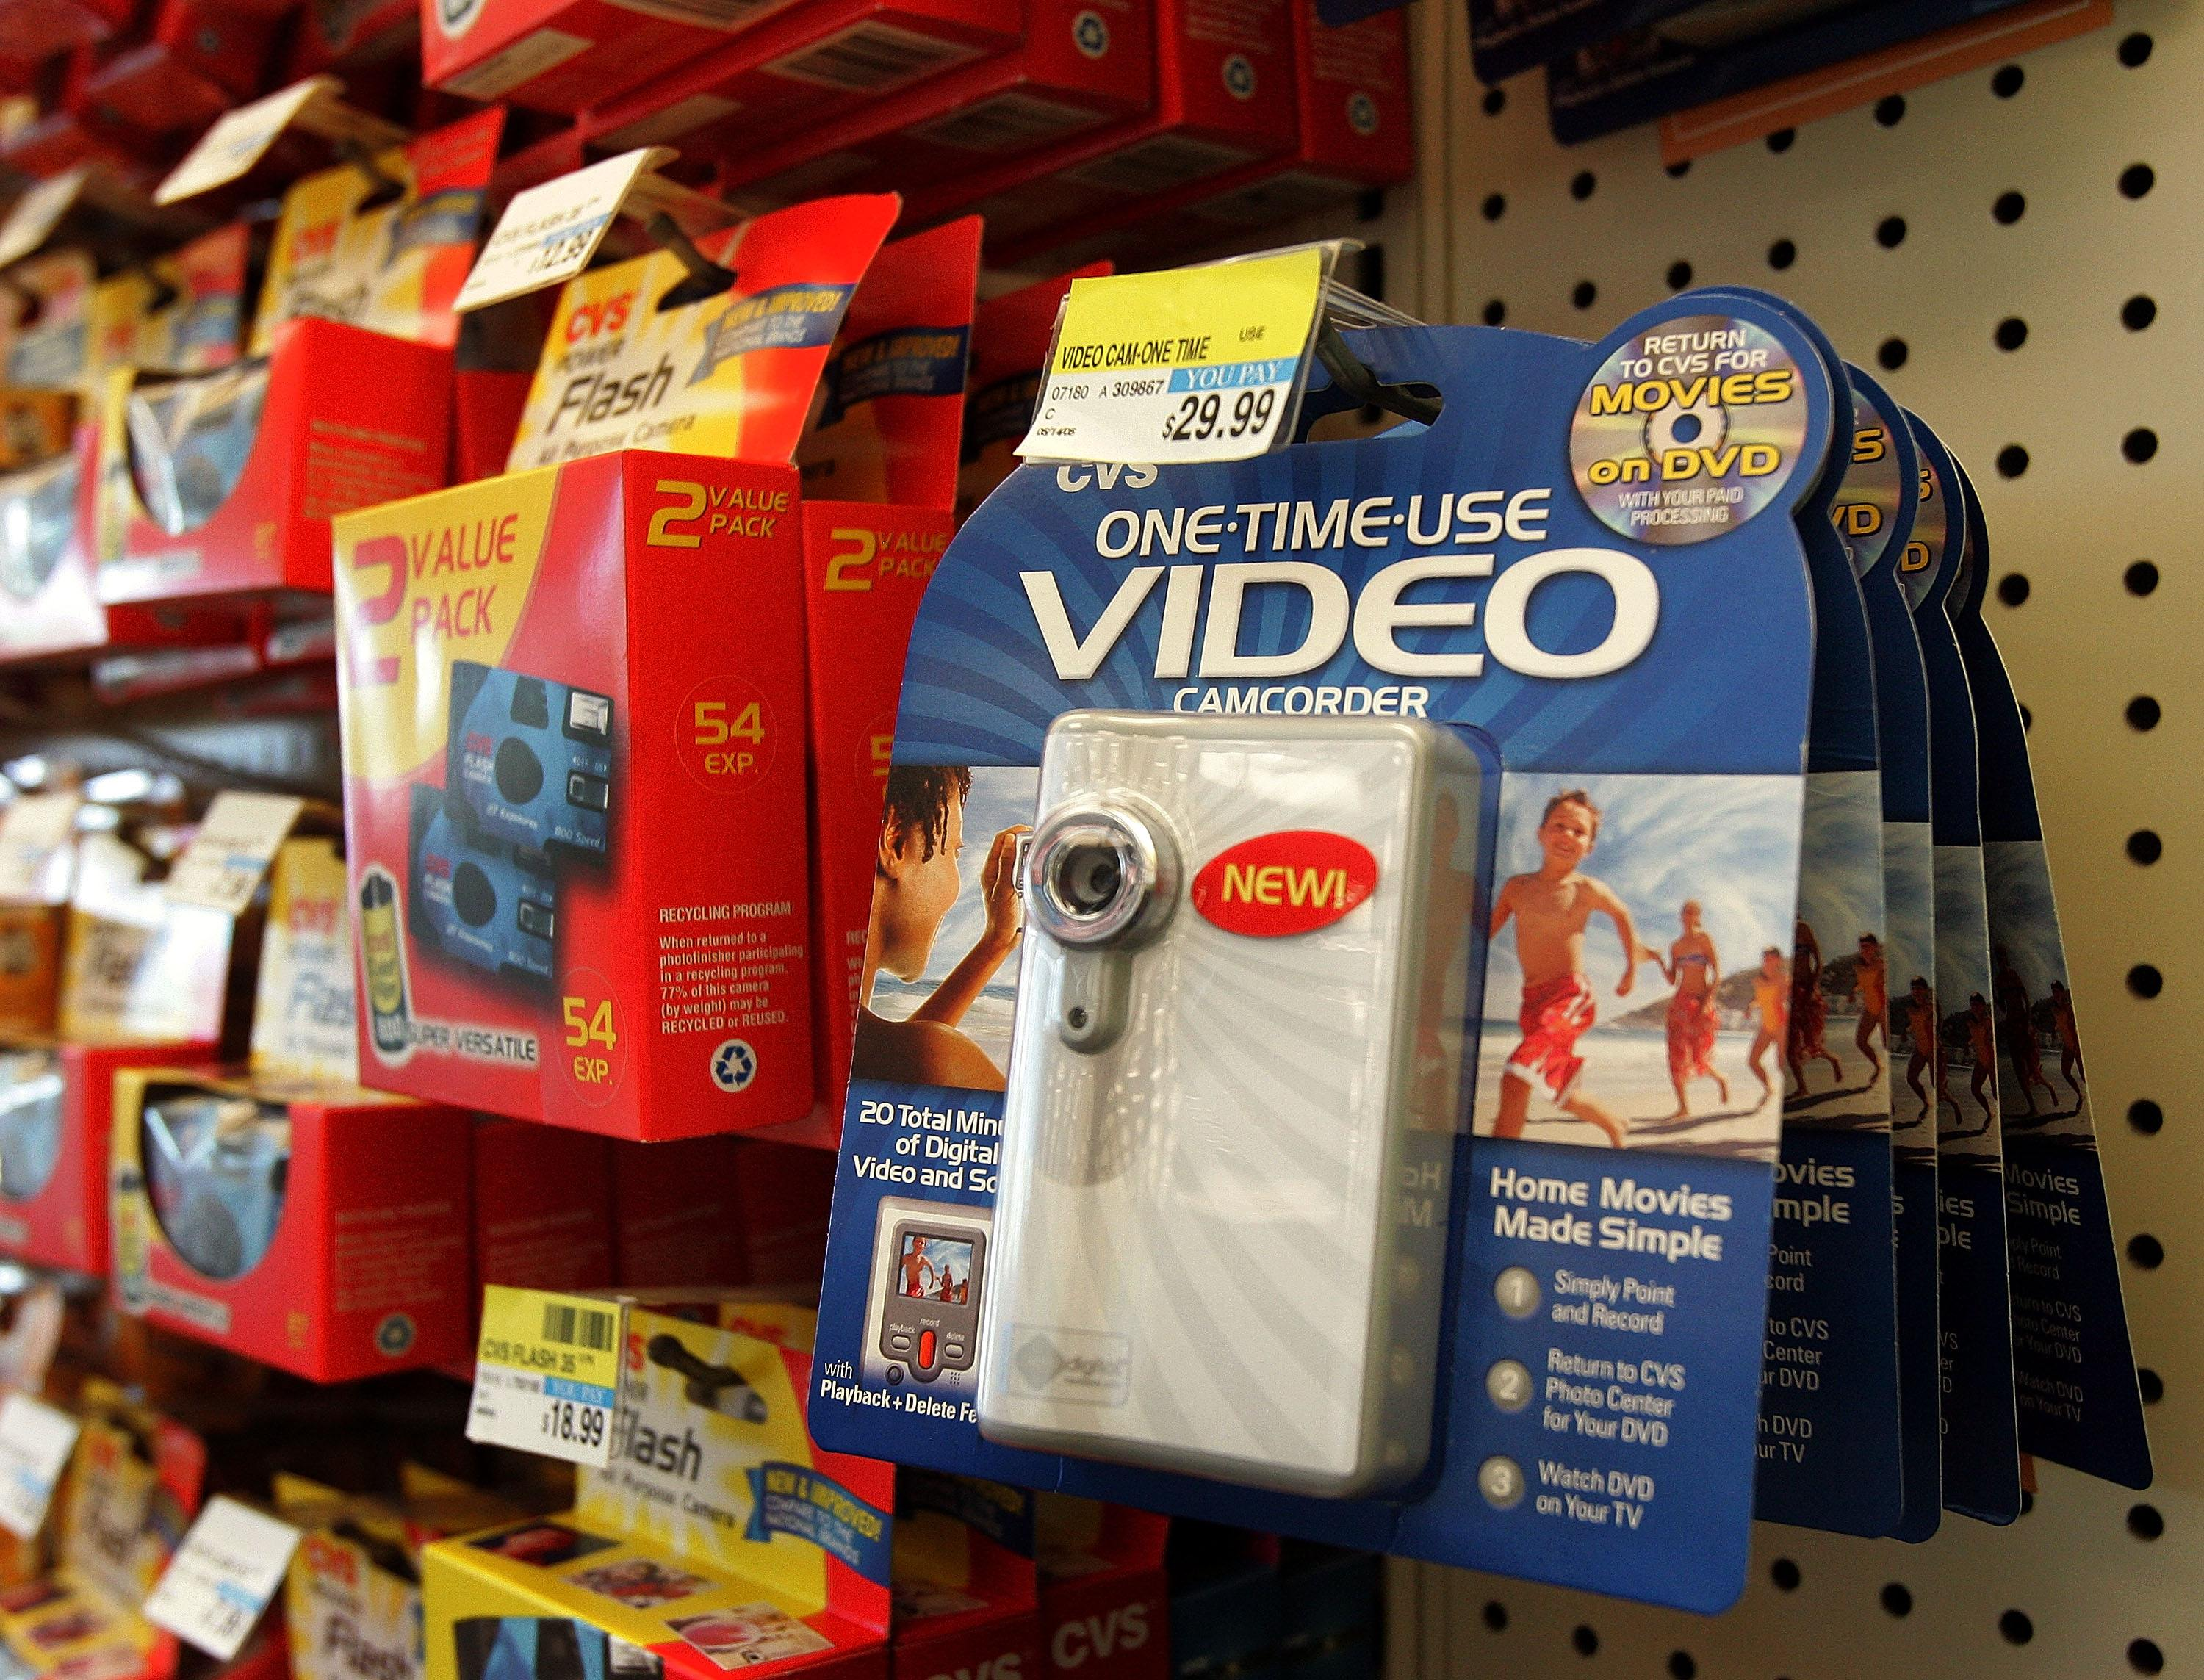 Disposable cameras and camcorders